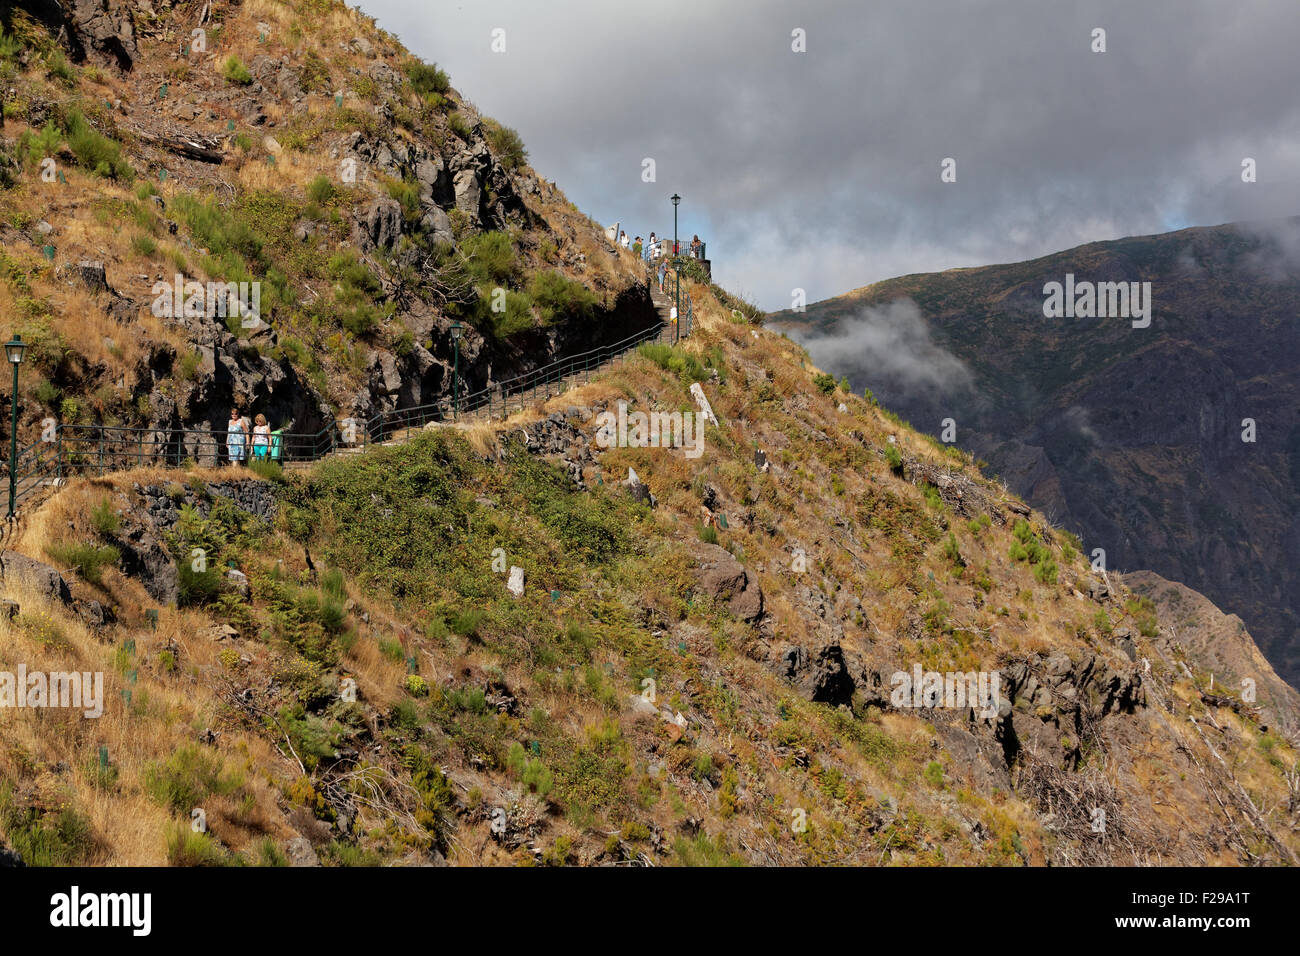 Tourists at the viewpoint at Eira do Serrado, Madeira, Portugal - Stock Image